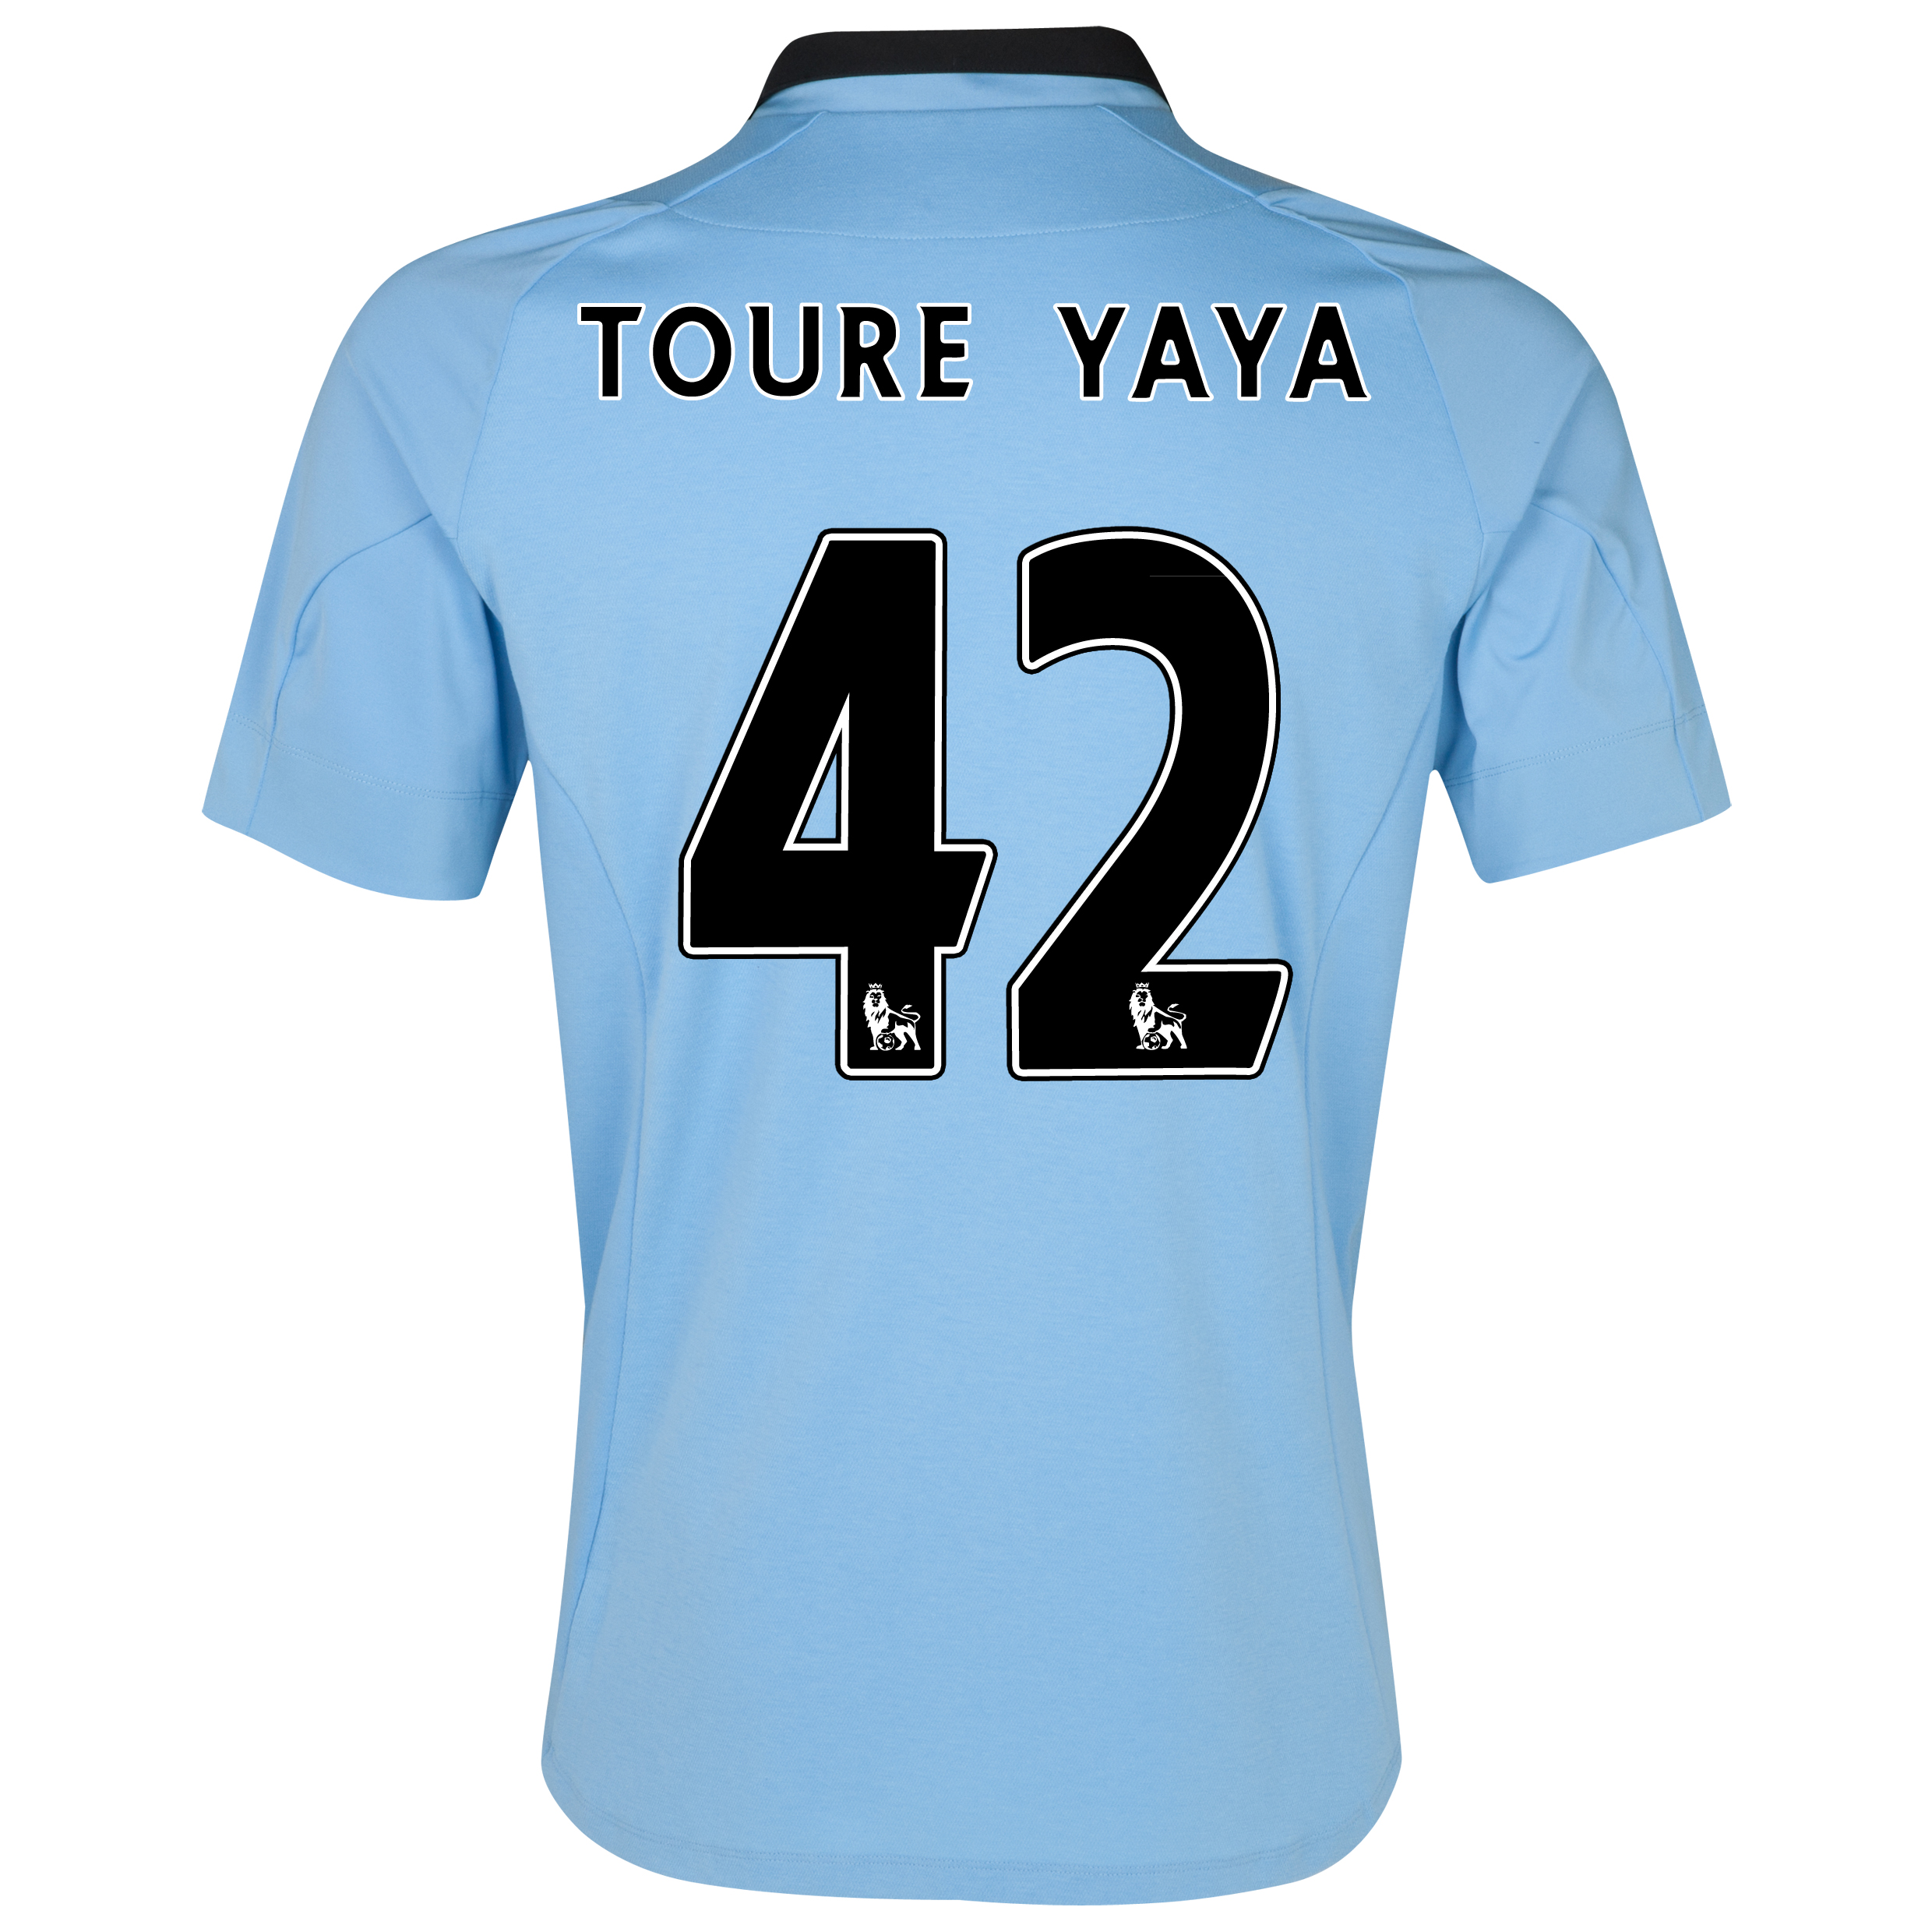 Manchester City Home Shirt 2012/13 - Junior with Toure Yaya 42 printing